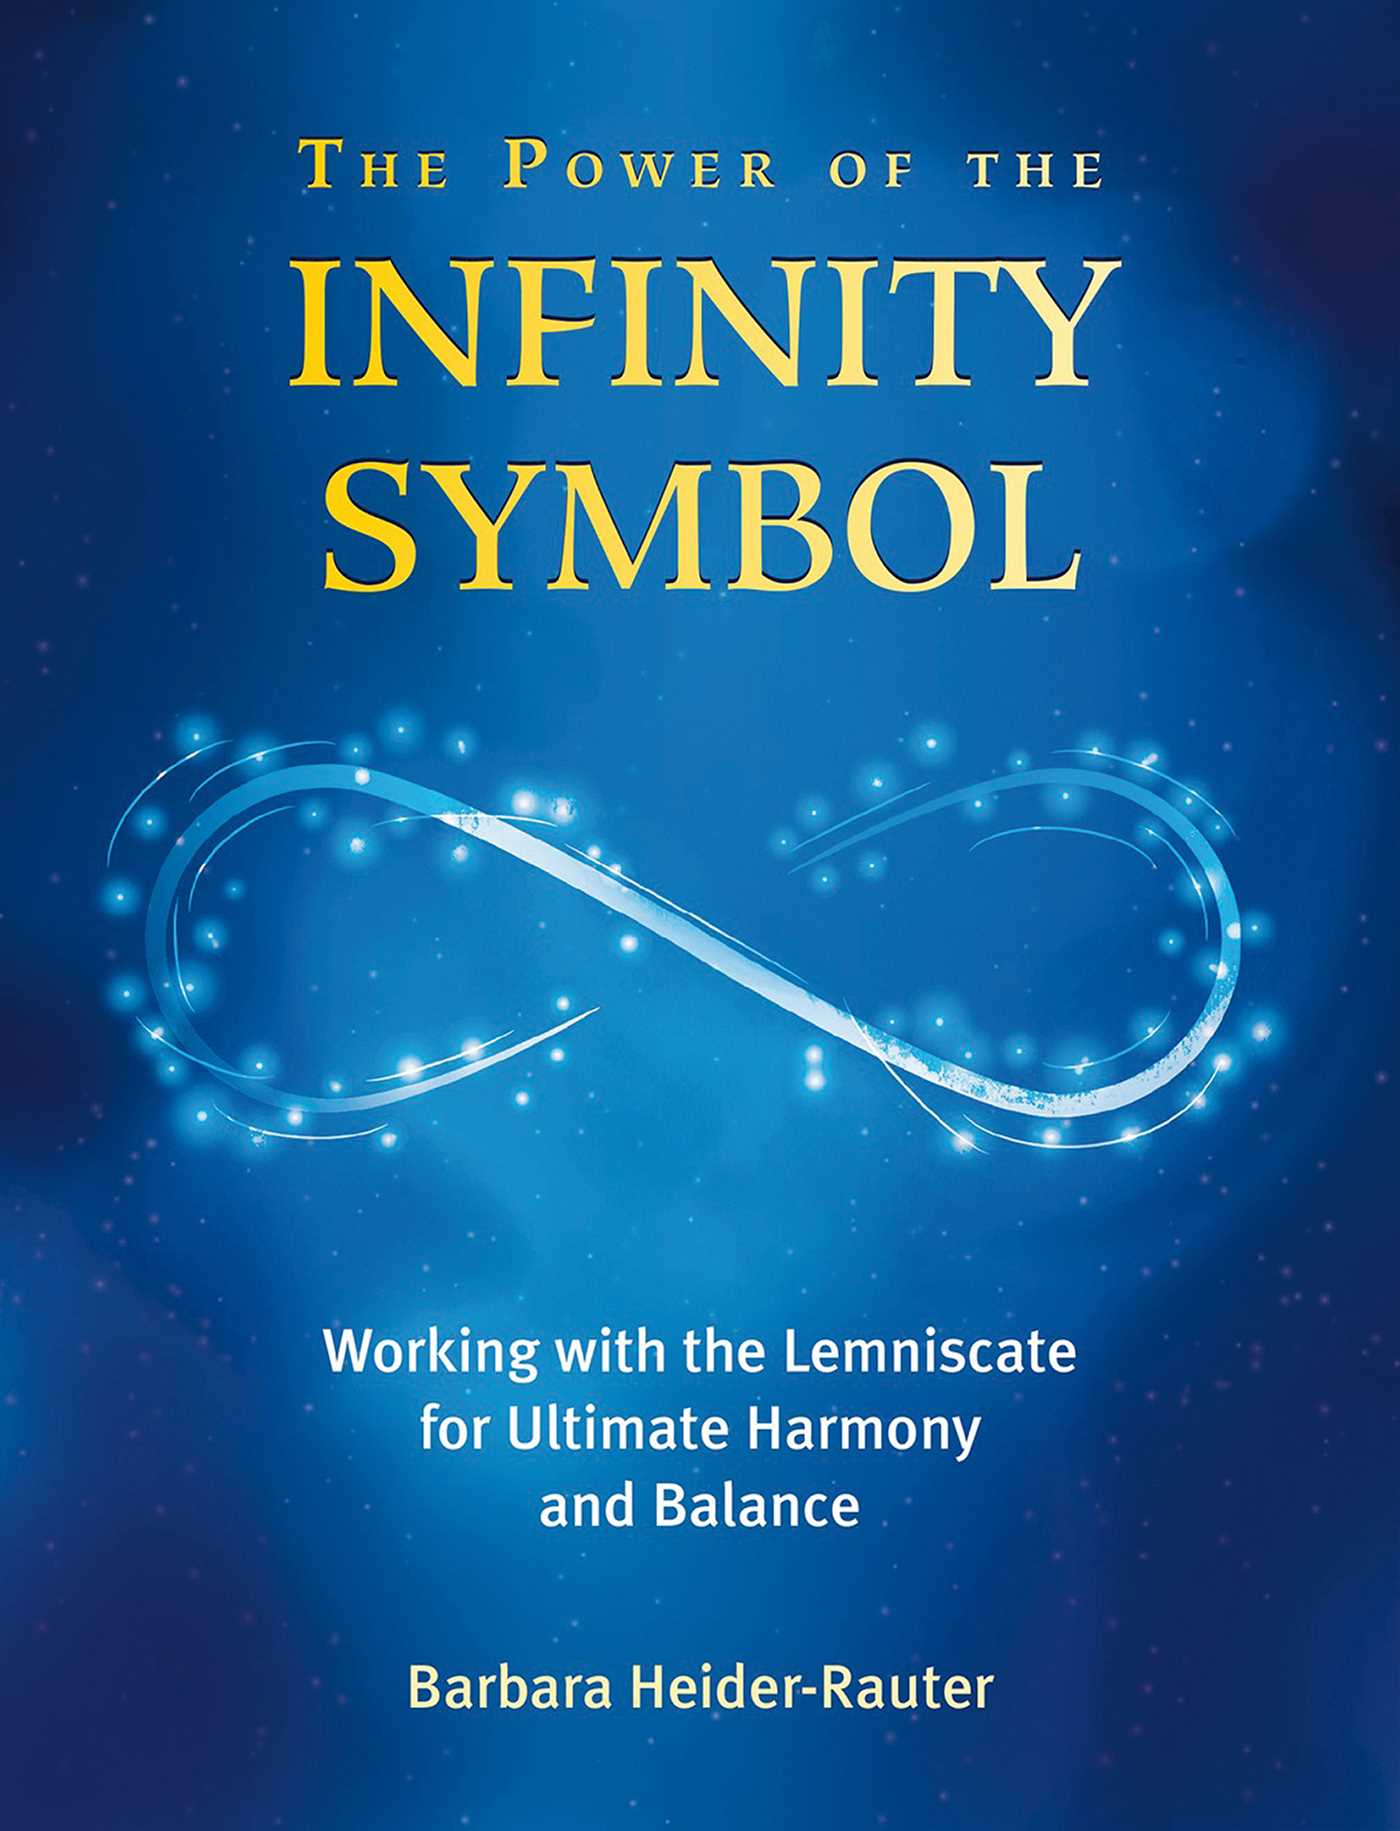 The power of the infinity symbol 9781844097524 hr